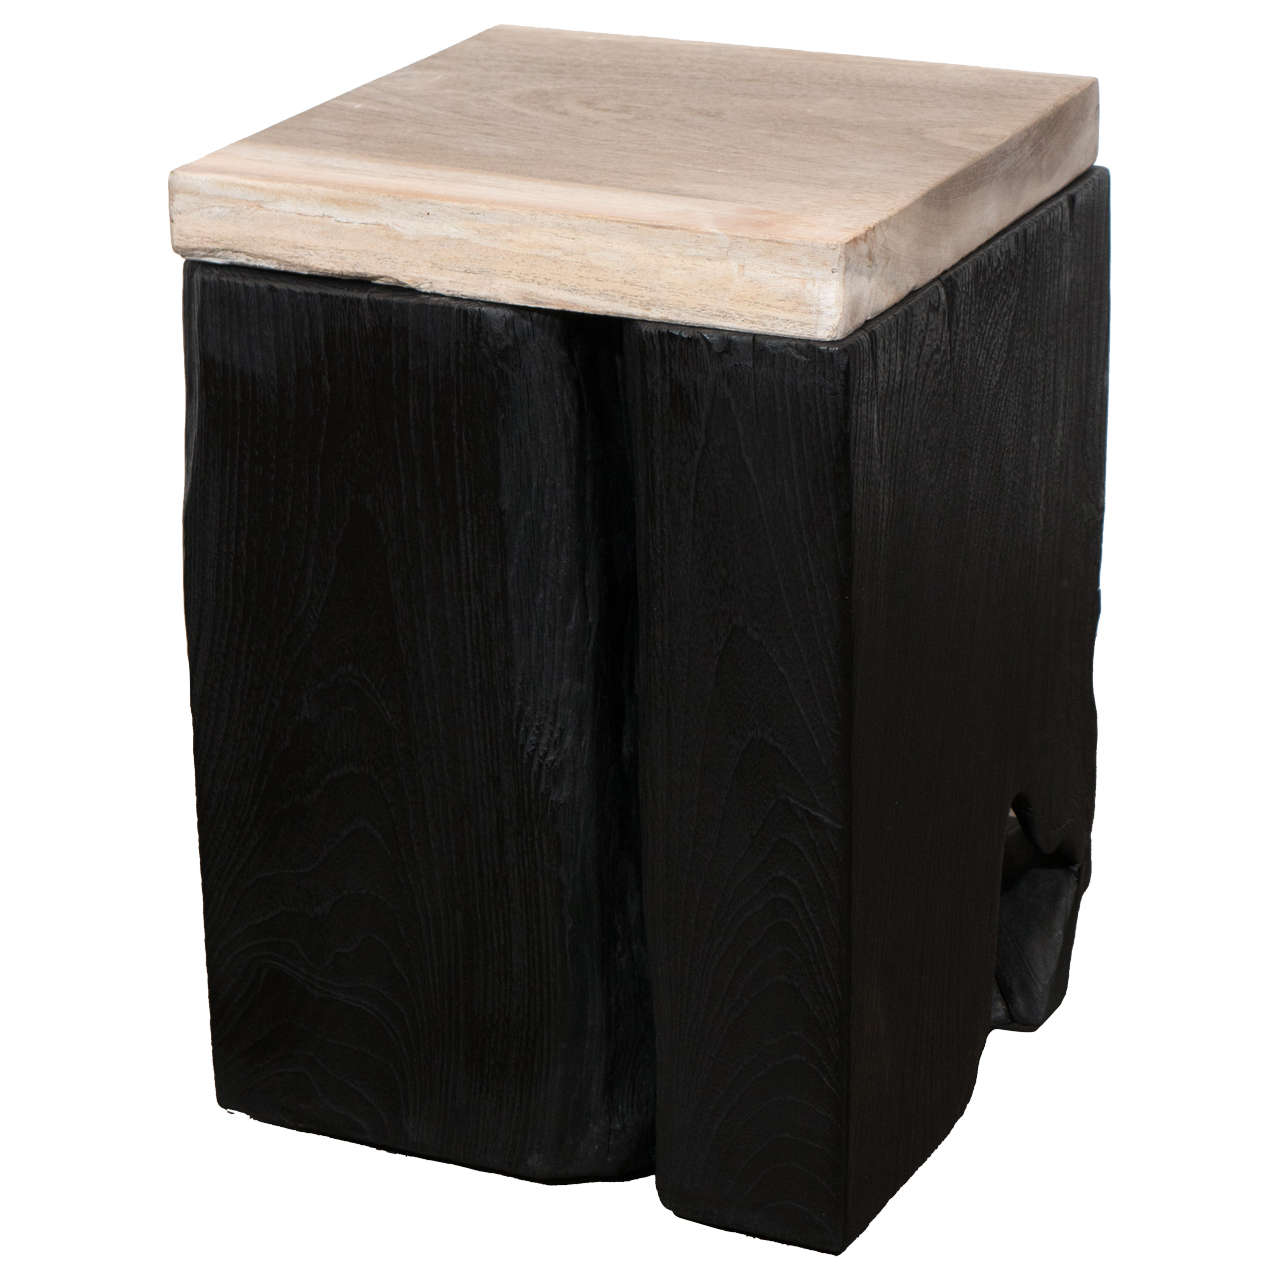 Andrianna Shamaris Triple Burnt Teak Wood Side Table with Petrified Wood Top